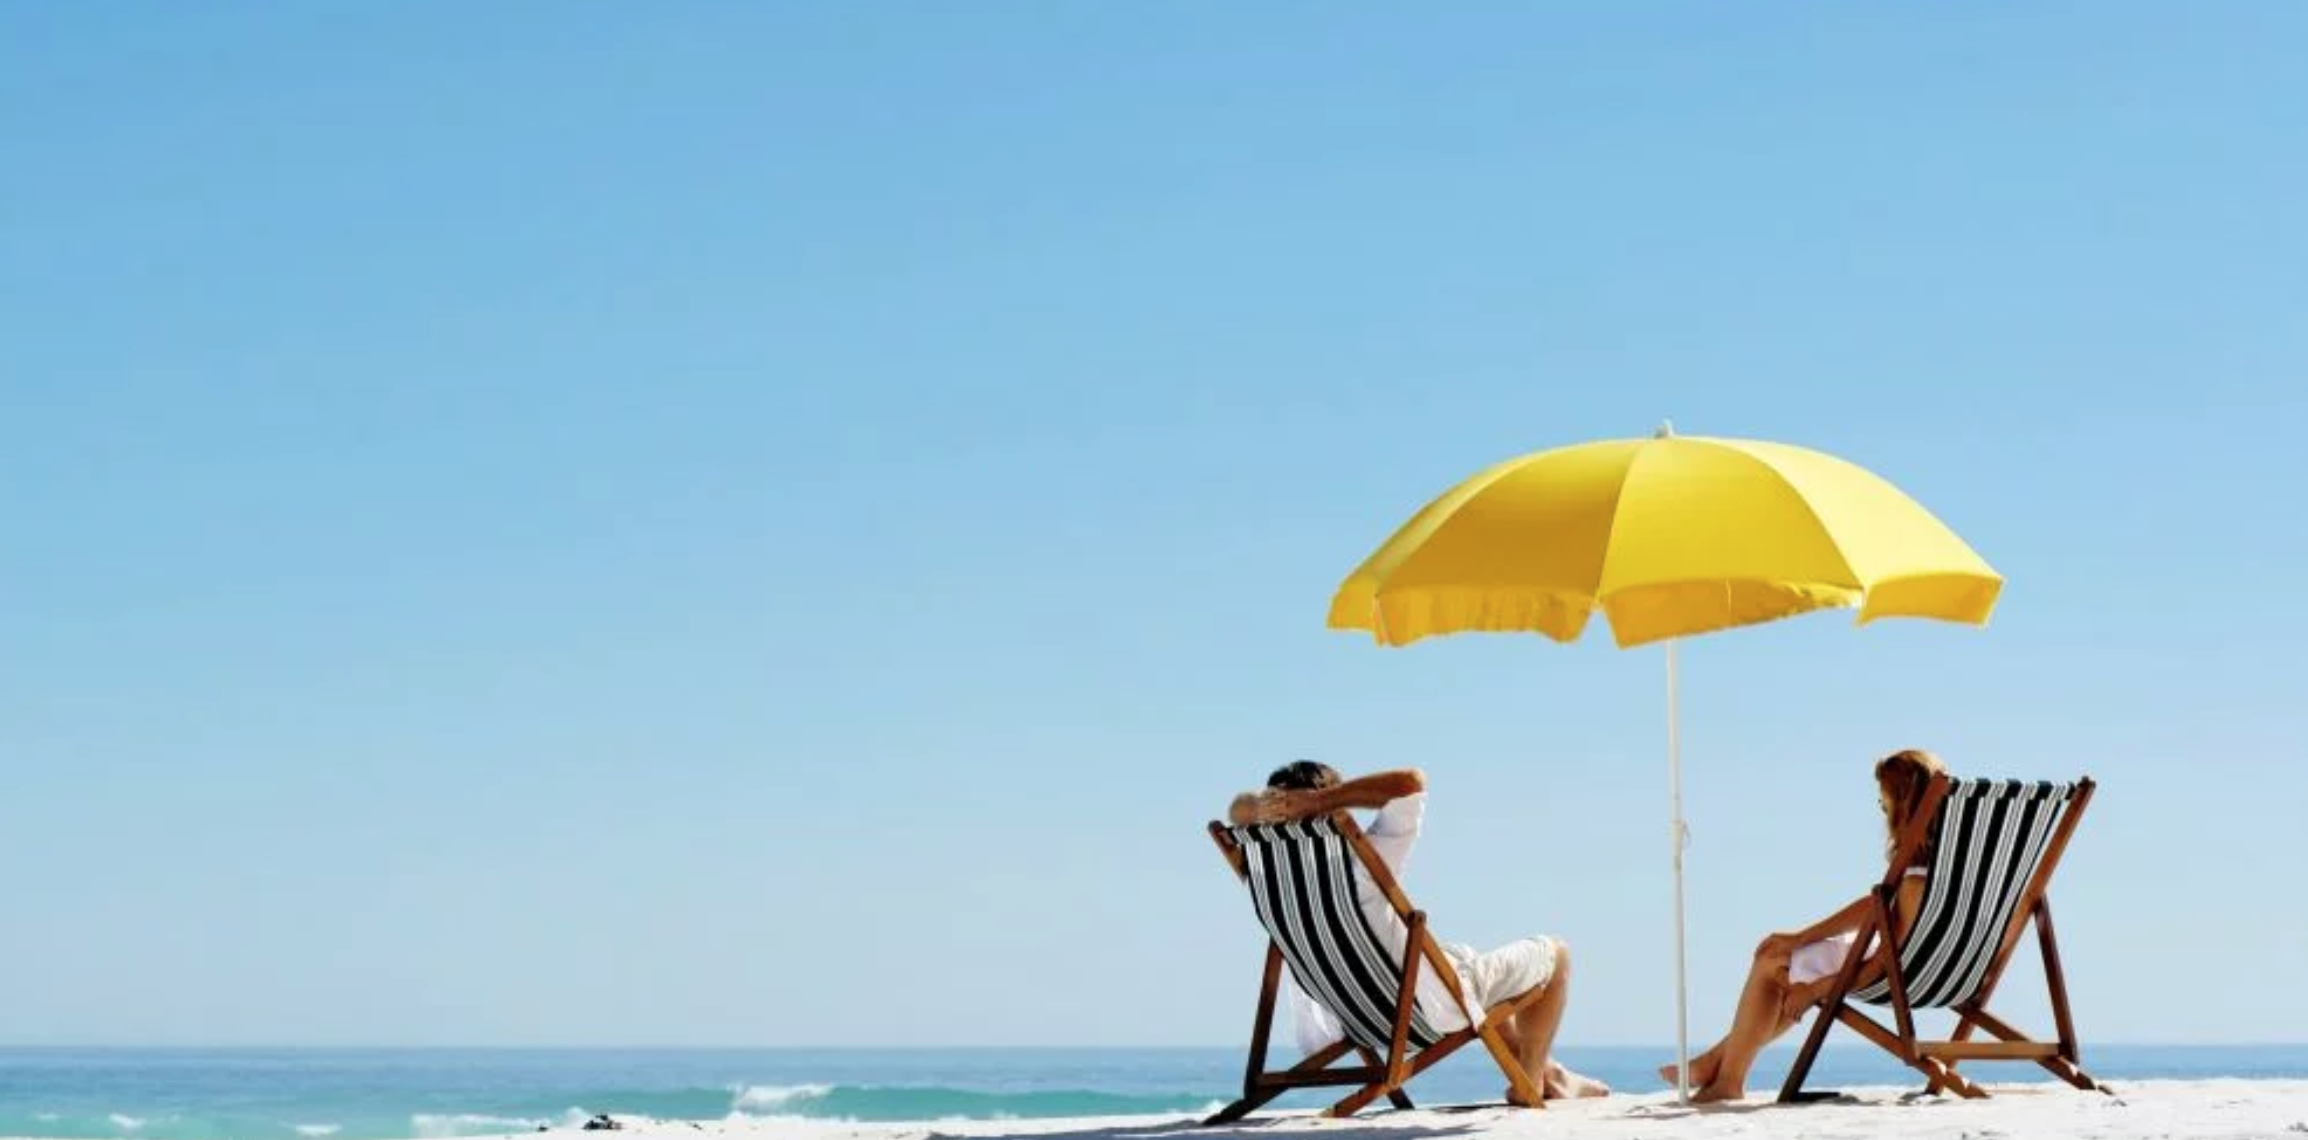 No beach umbrella? No problem! They're Easy to Rent in Myrtle Beach